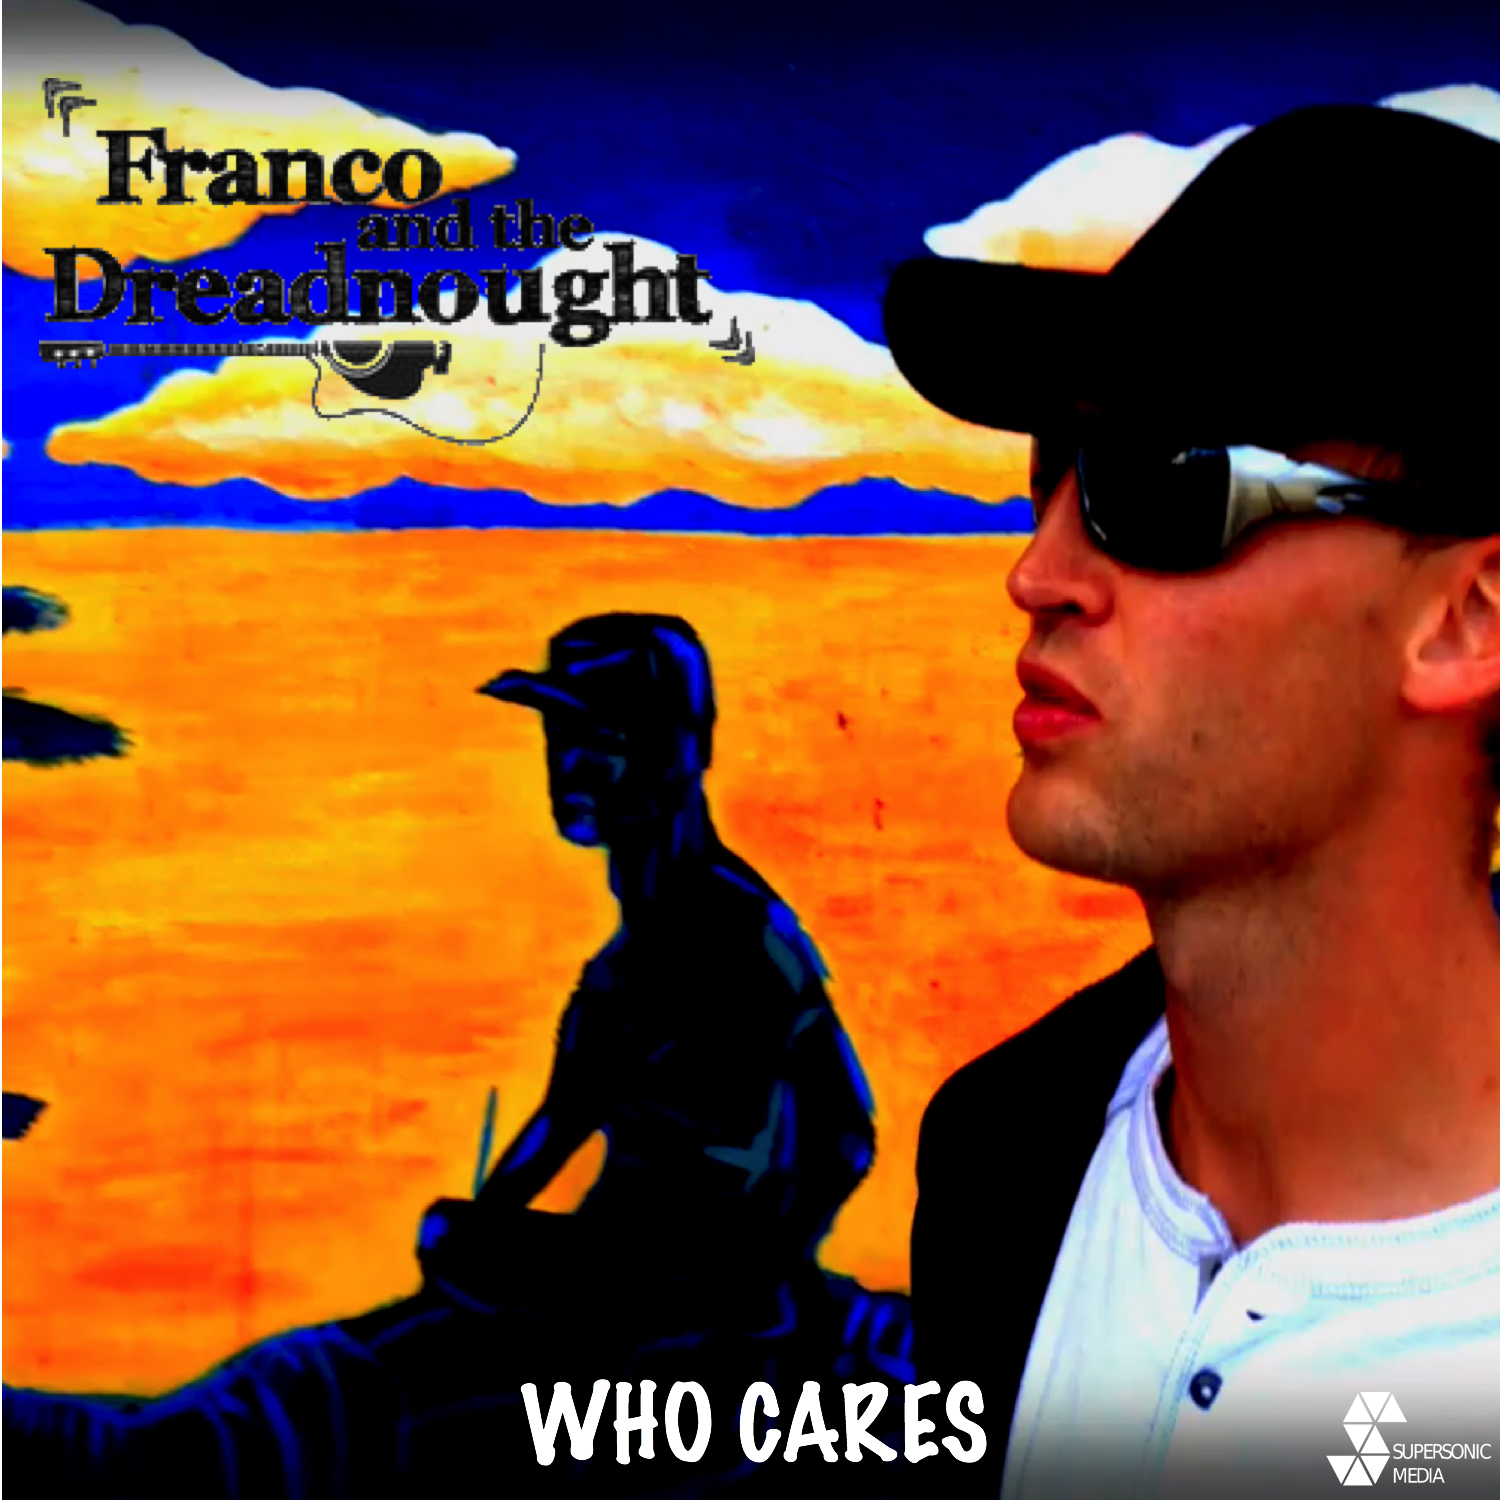 Franco & The Dreadnought - Who Cares